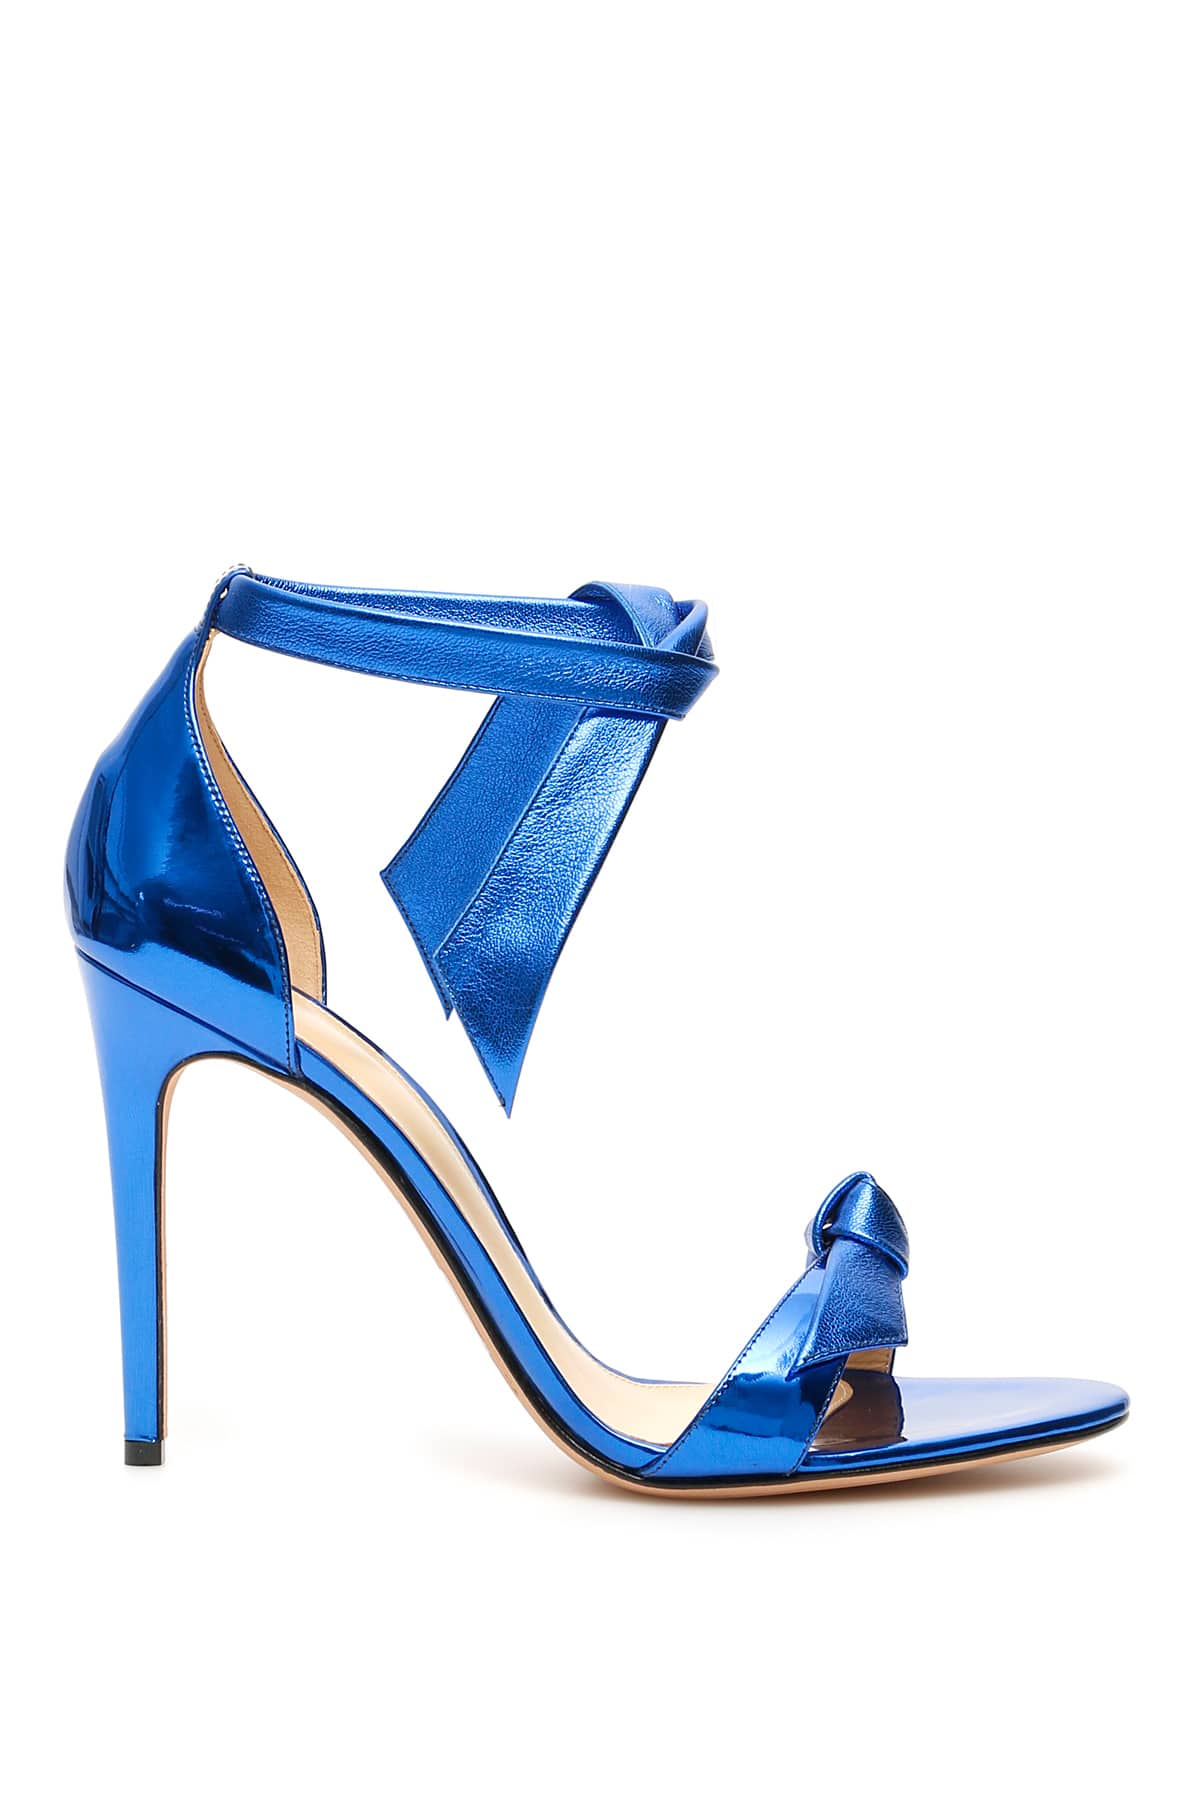 ALEXANDRE BIRMAN LOVELY CLARITA SANDALS 100 38 Blue Leather